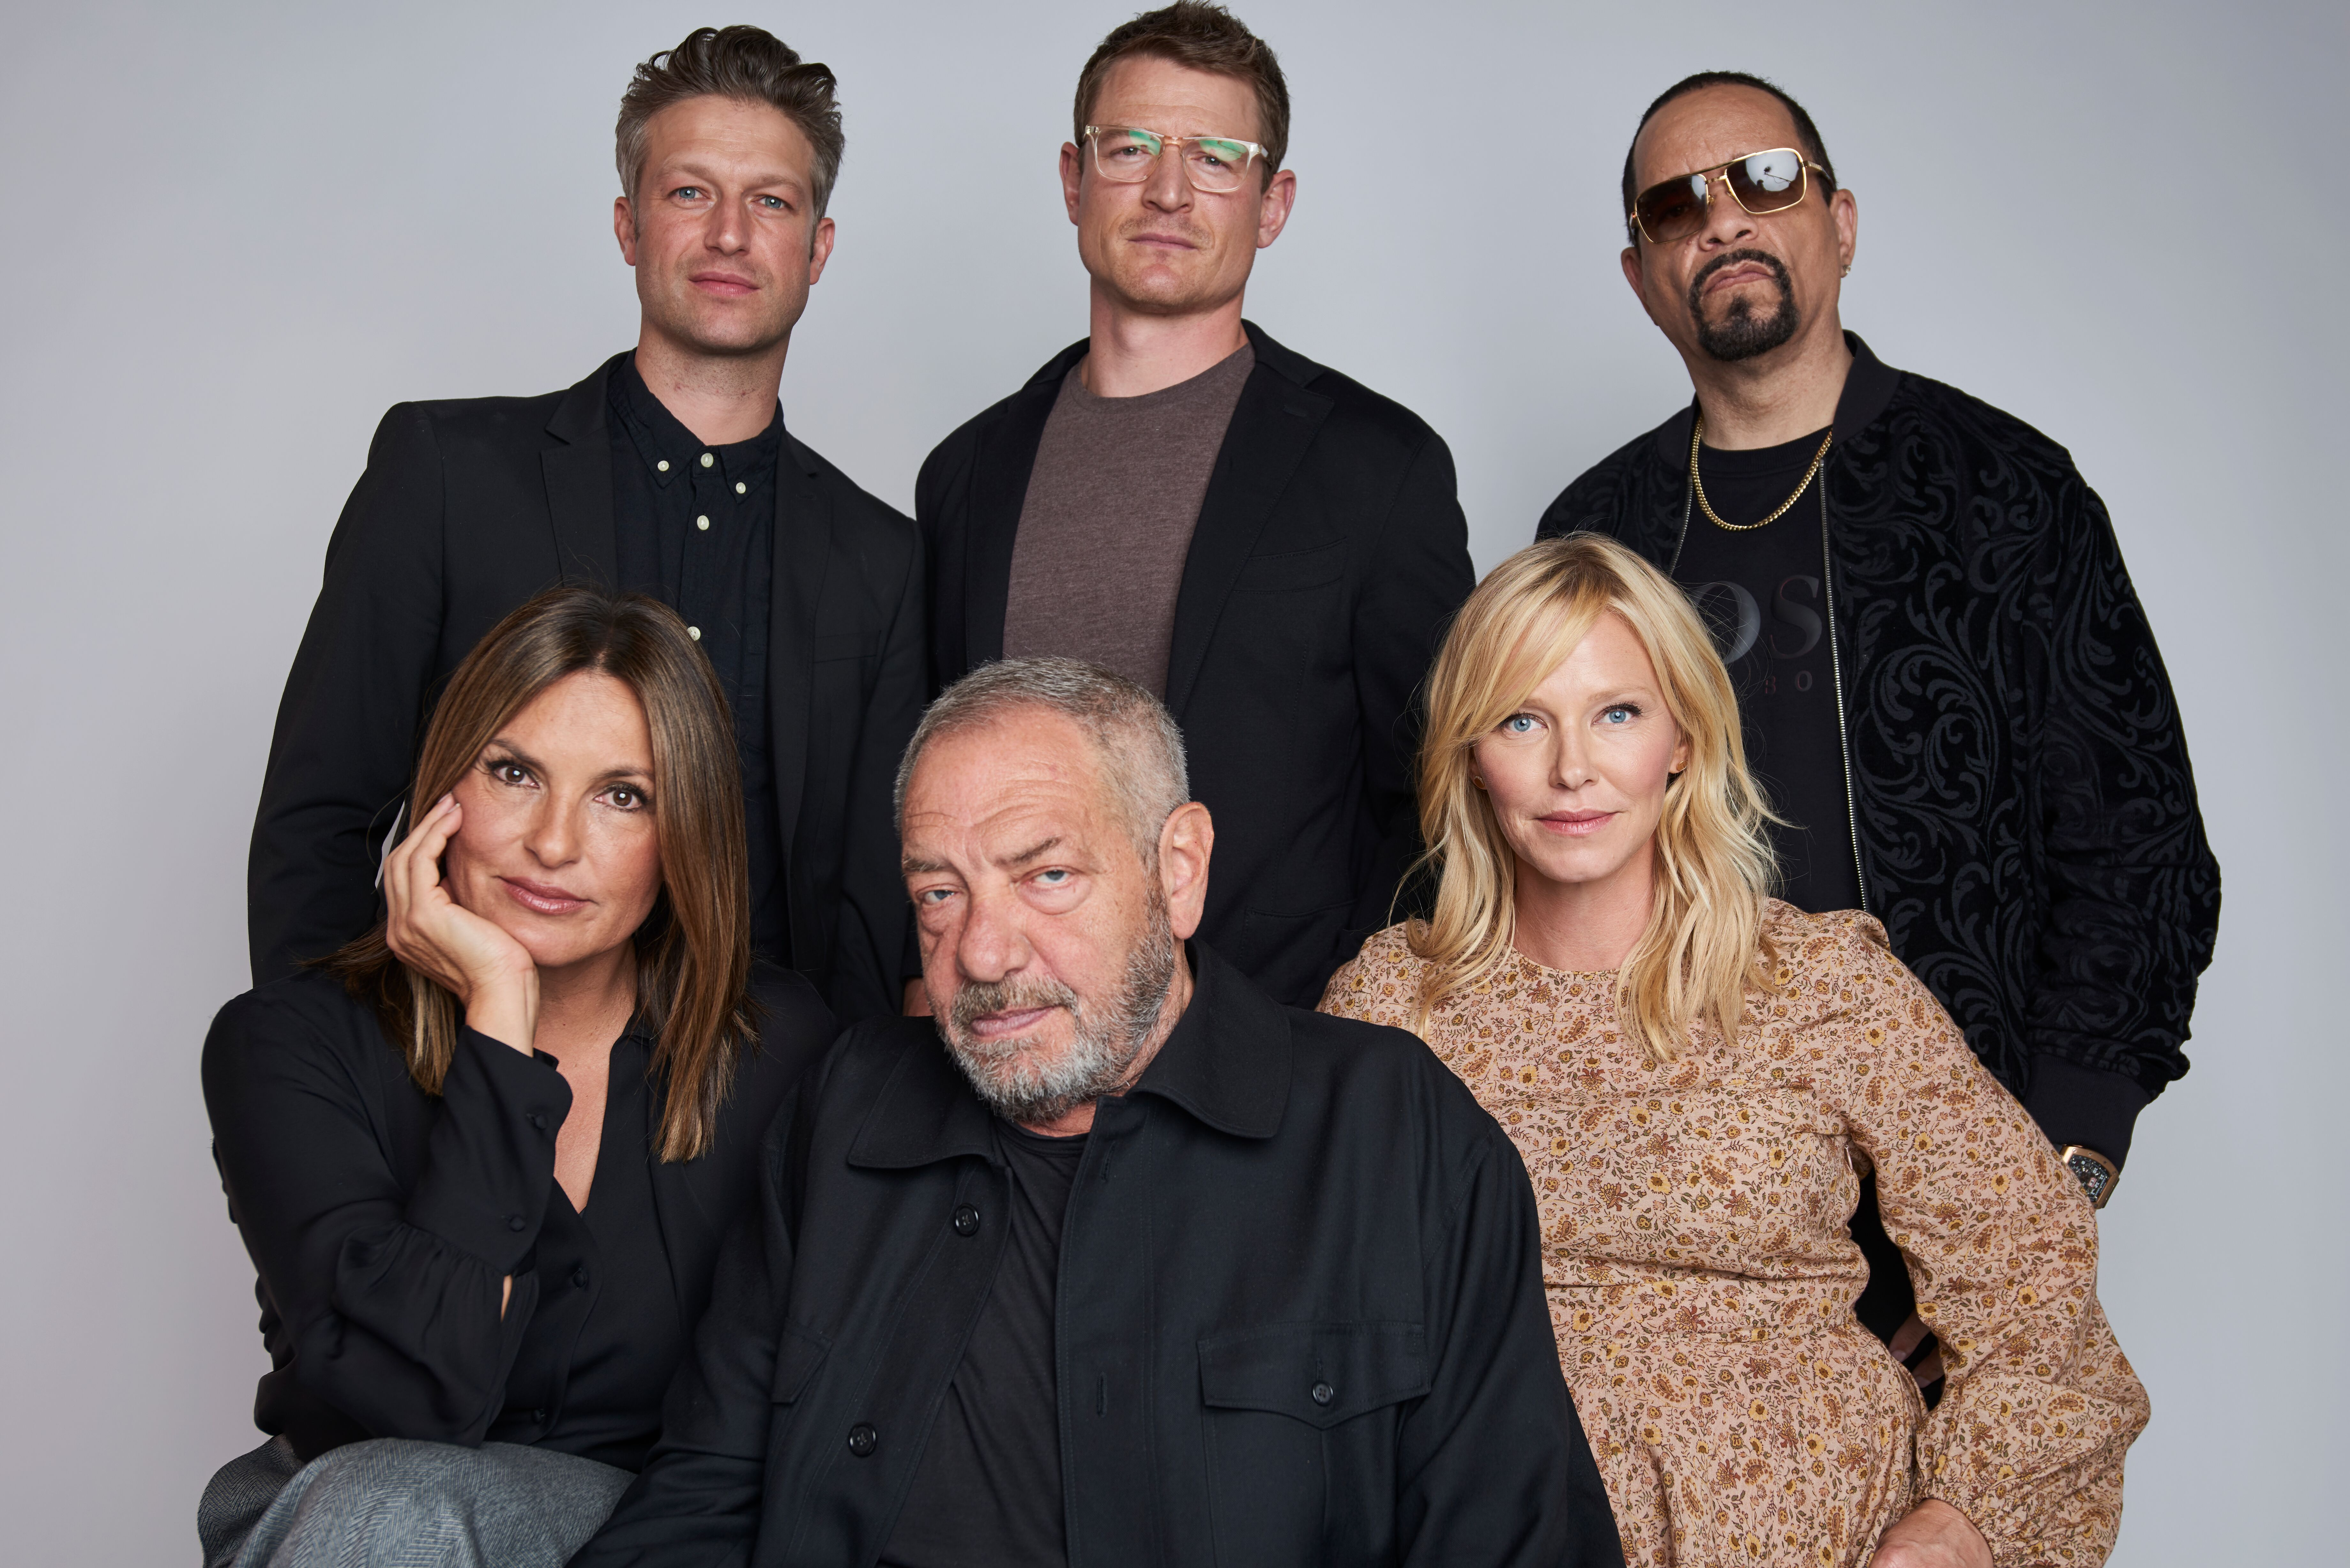 Mariska Hargitay, Peter Scanavino, Dick Wolf, Kelli Giddish, Ice-T, and Philip Winchester of NBC's Law & Order: SVU pose  | Getty Images